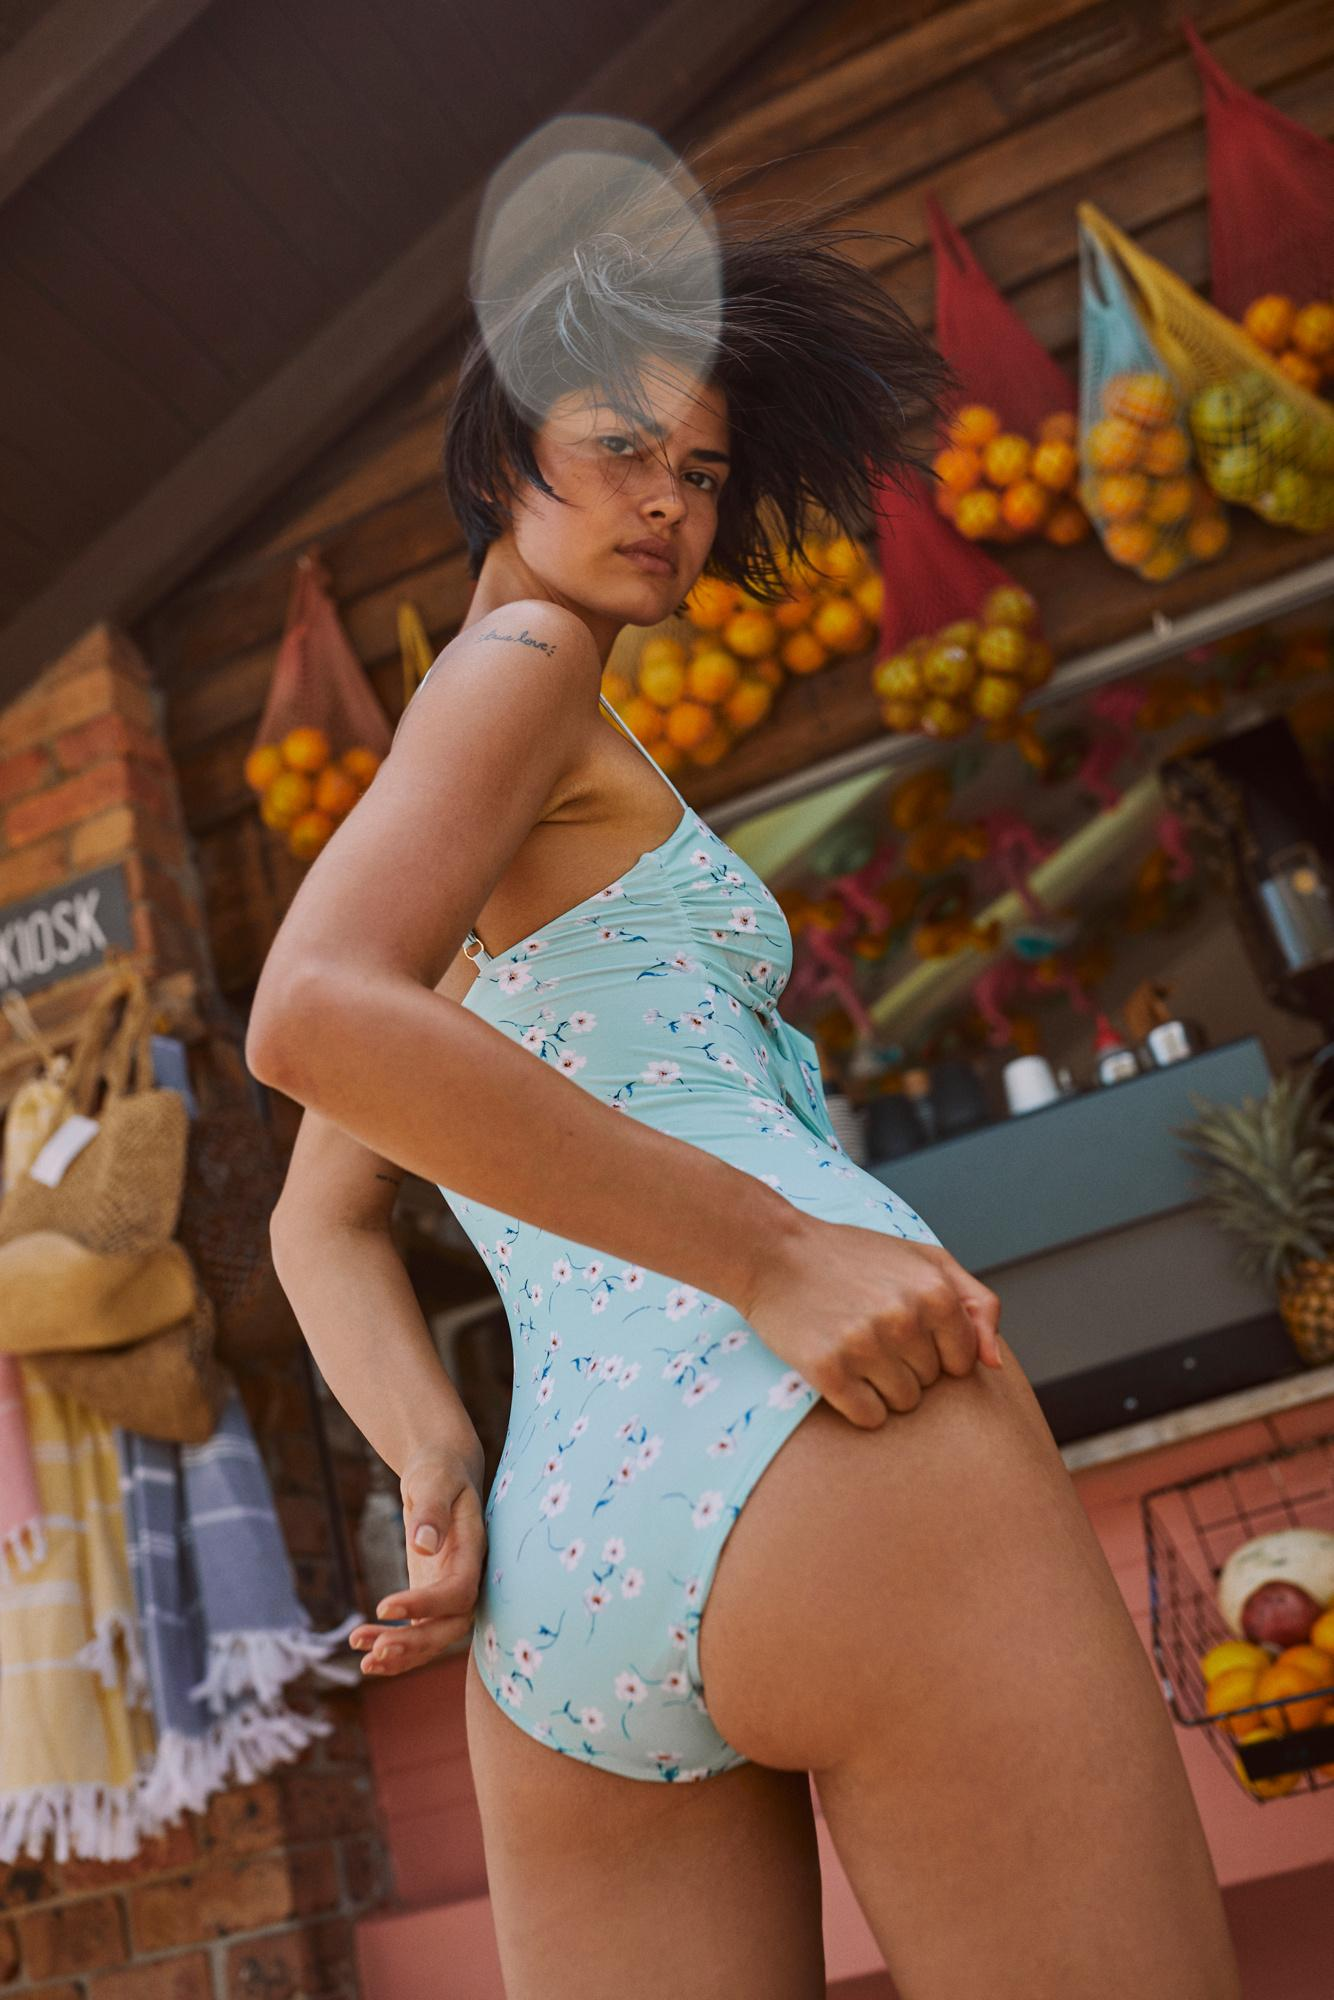 b9e8340af66a1 Mia Printed One-piece Swimsuit By Beach Riot - Lyst. View fullscreen